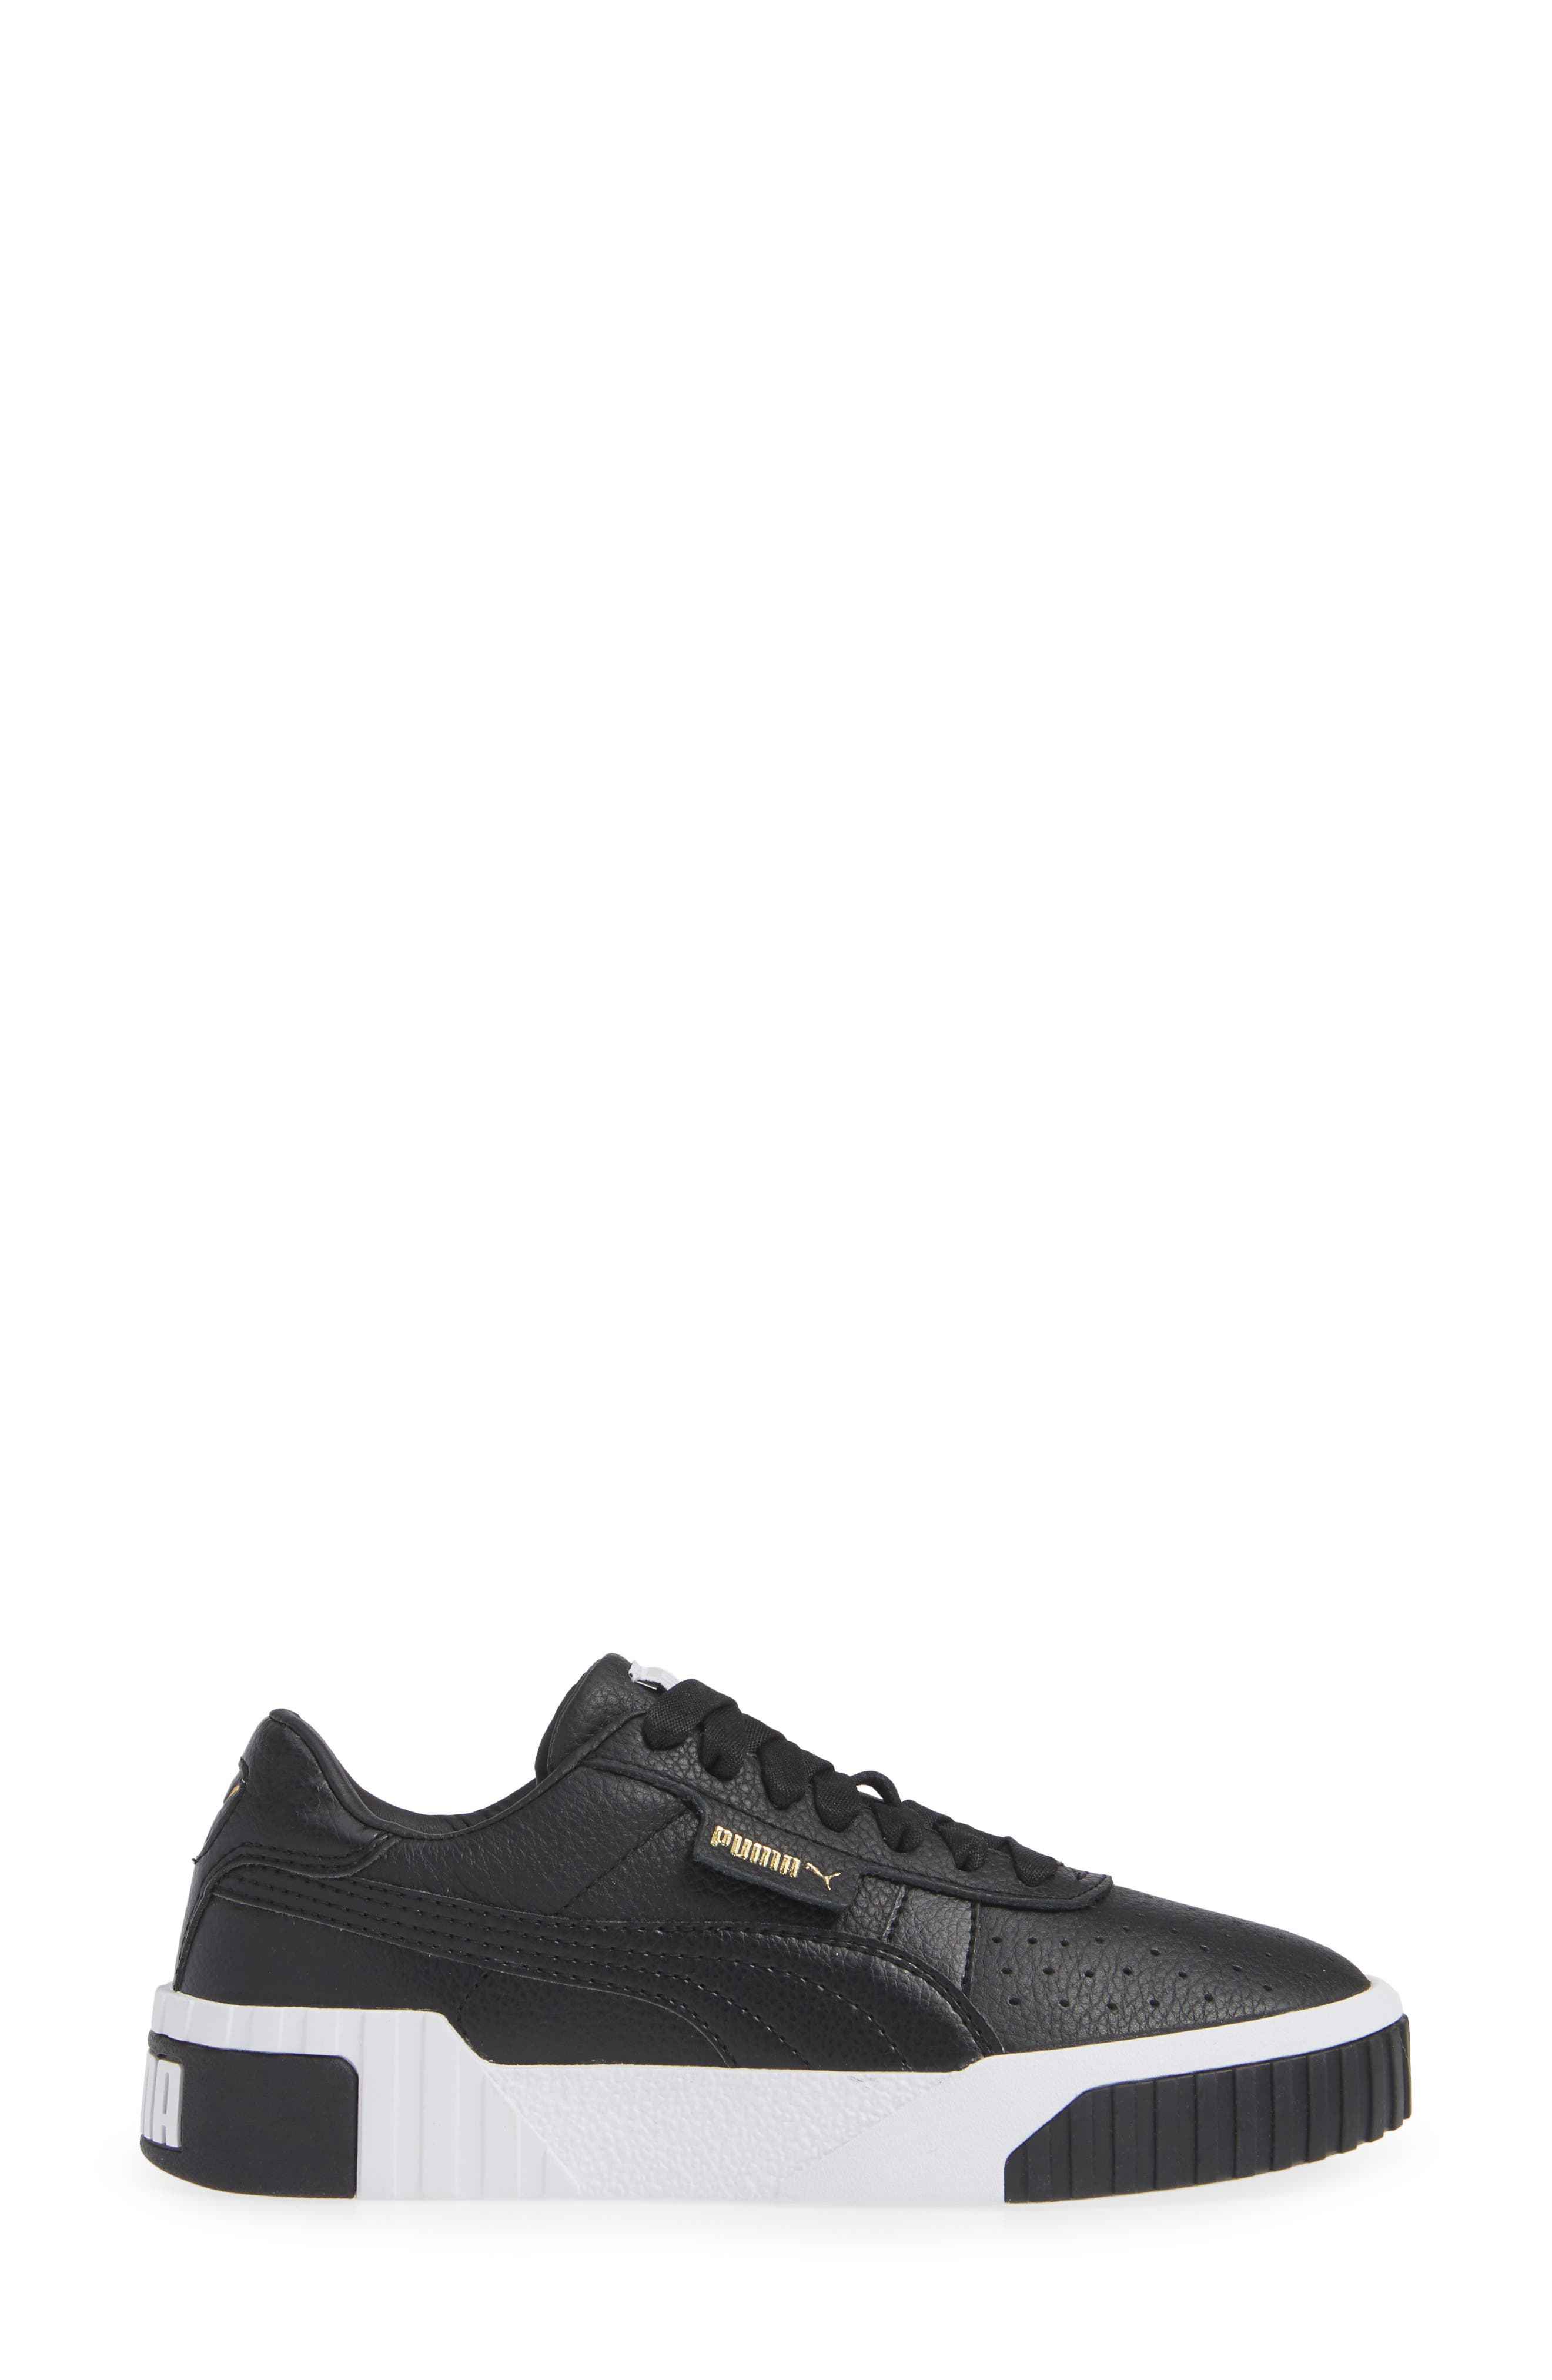 PUMA, Cali Sneaker, Alternate thumbnail 3, color, PUMA BLACK/ PUMA WHITE